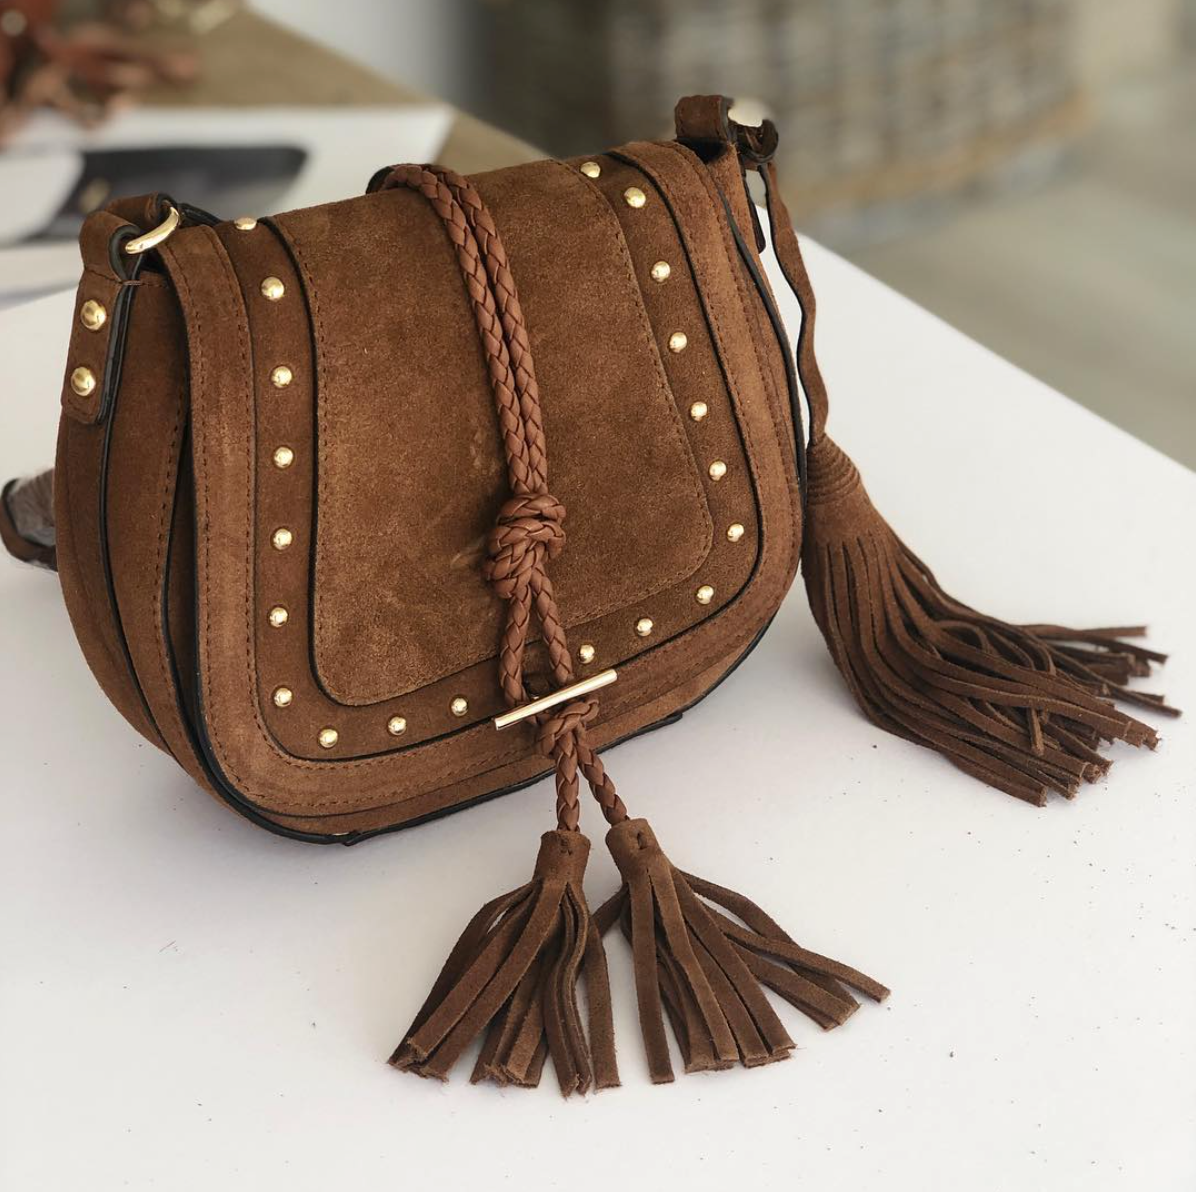 Rodeo Ready Accessories. Saddle bags for the Modern Cowgirl